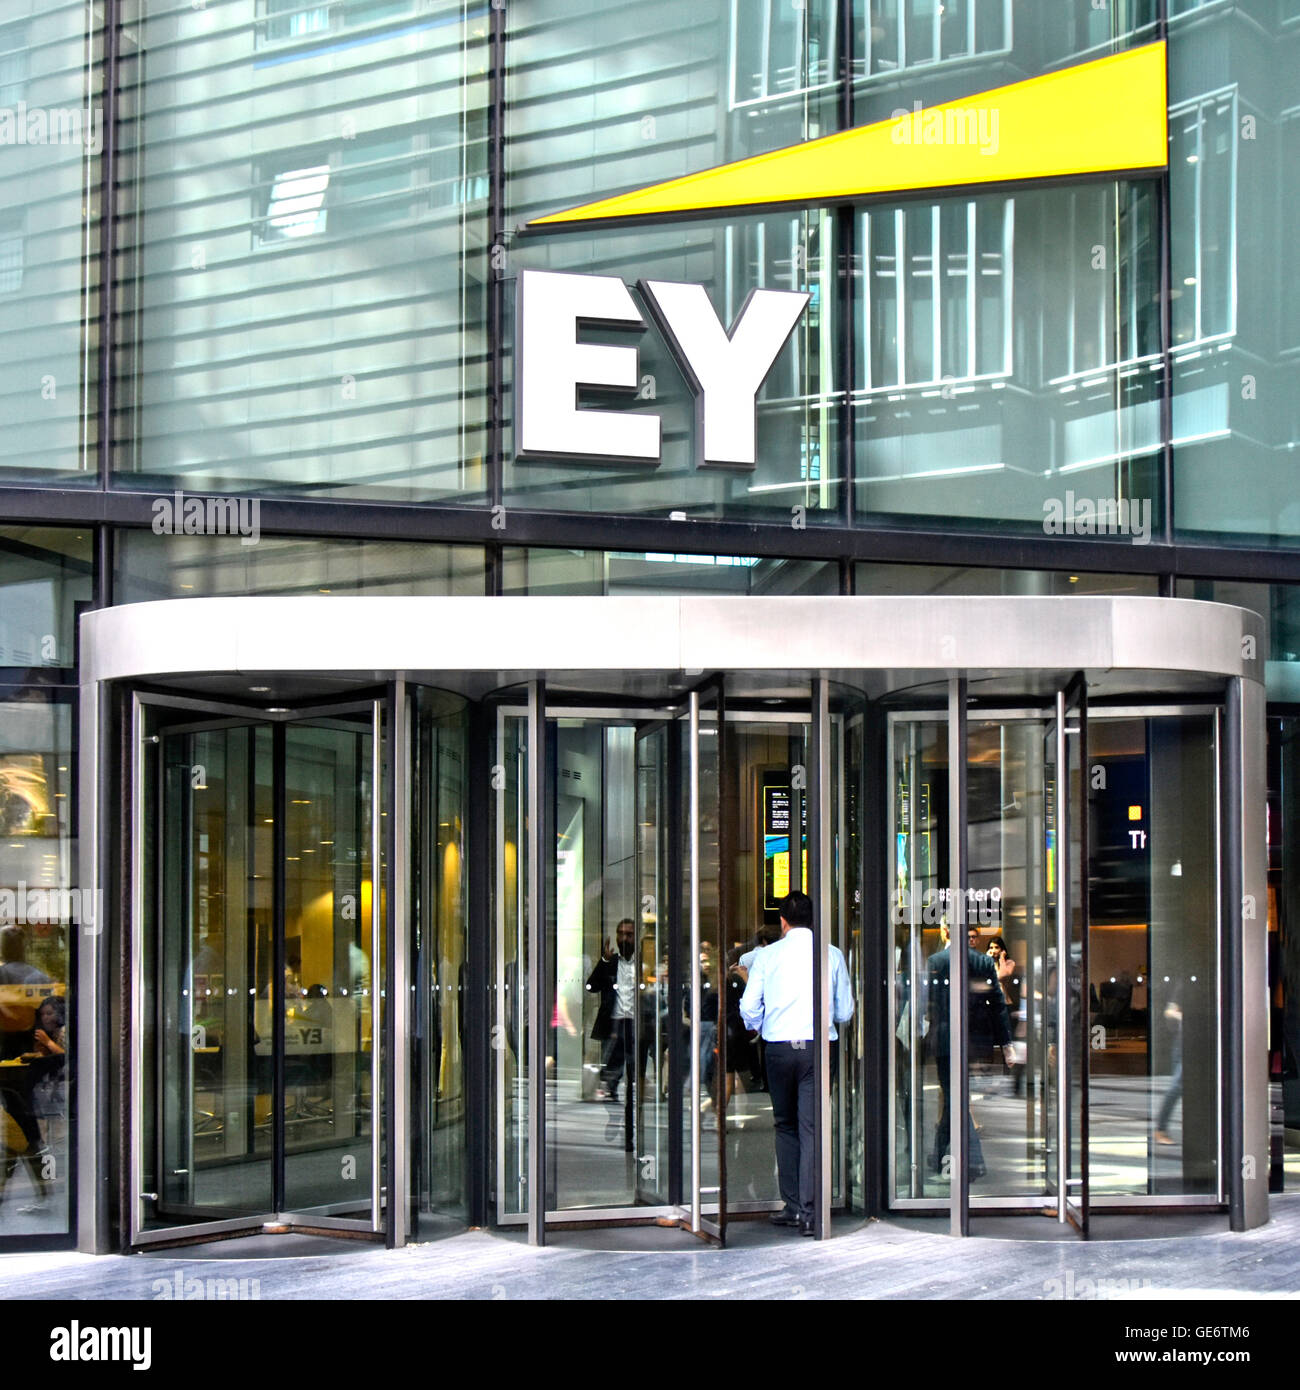 London office revolving door entrance with Ernst & Young logo & sign above for multinational professional - Stock Image